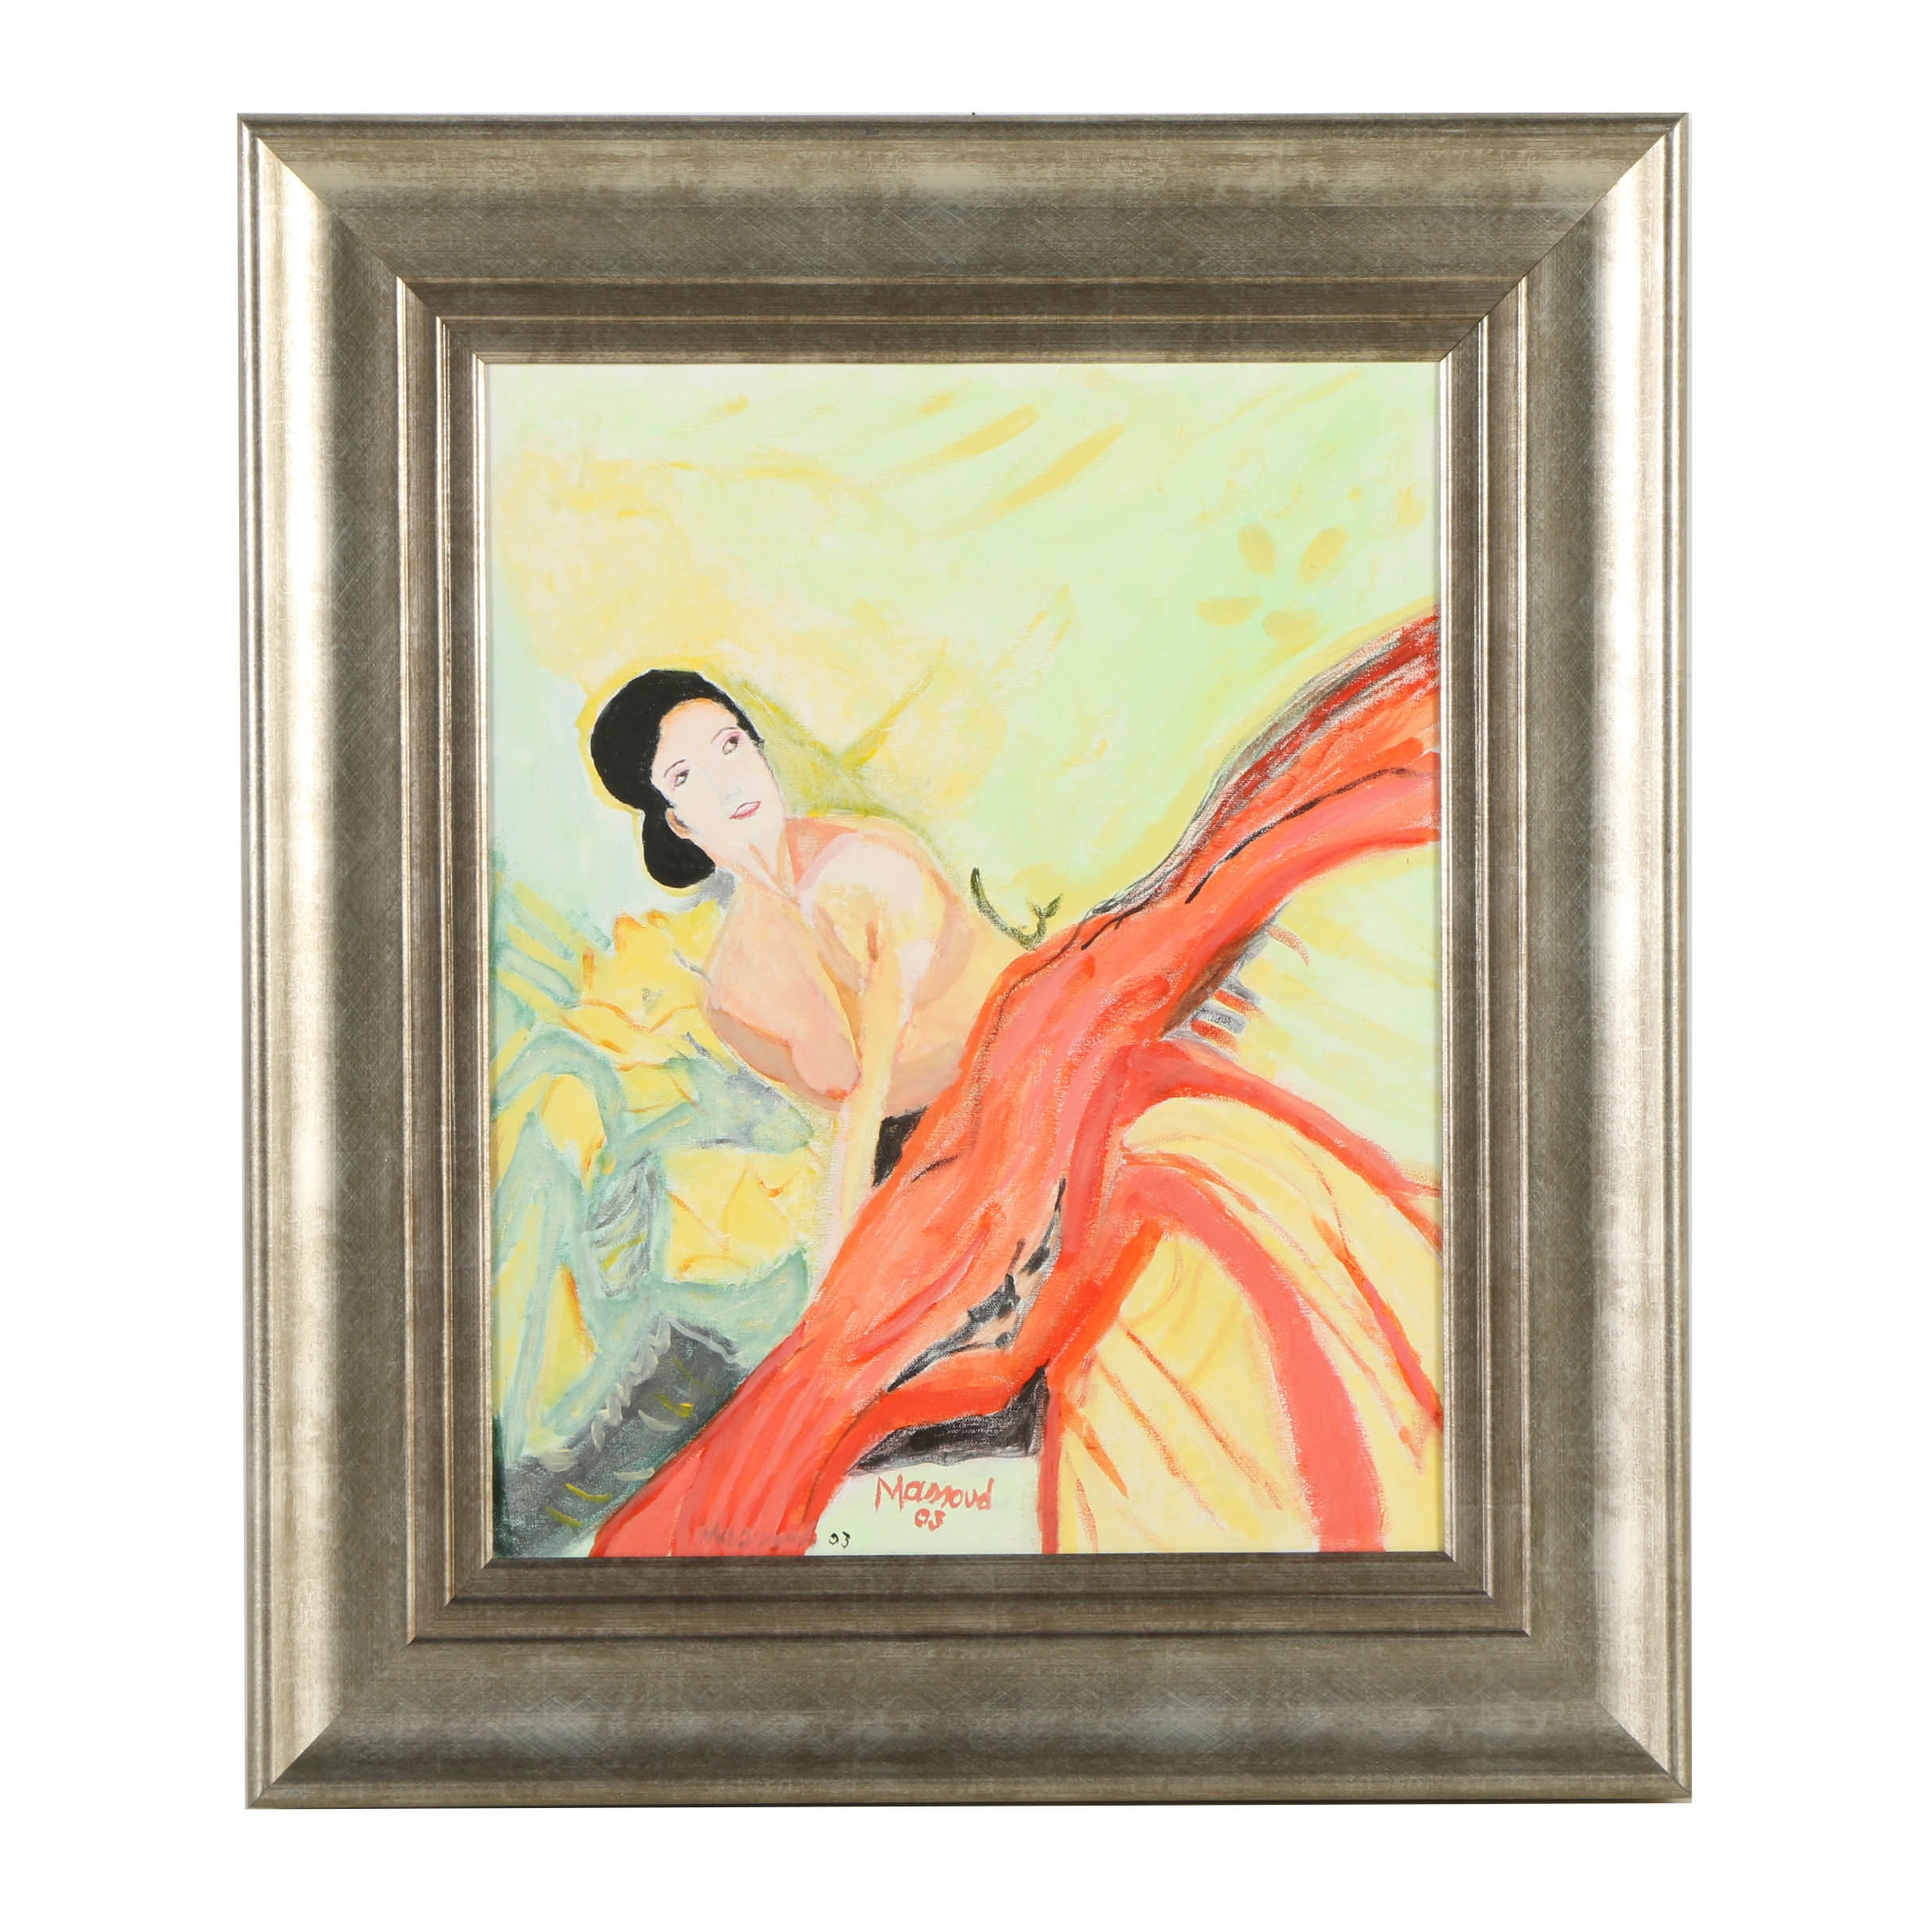 Mamoud Oil Painting on Canvas of a Female Nude